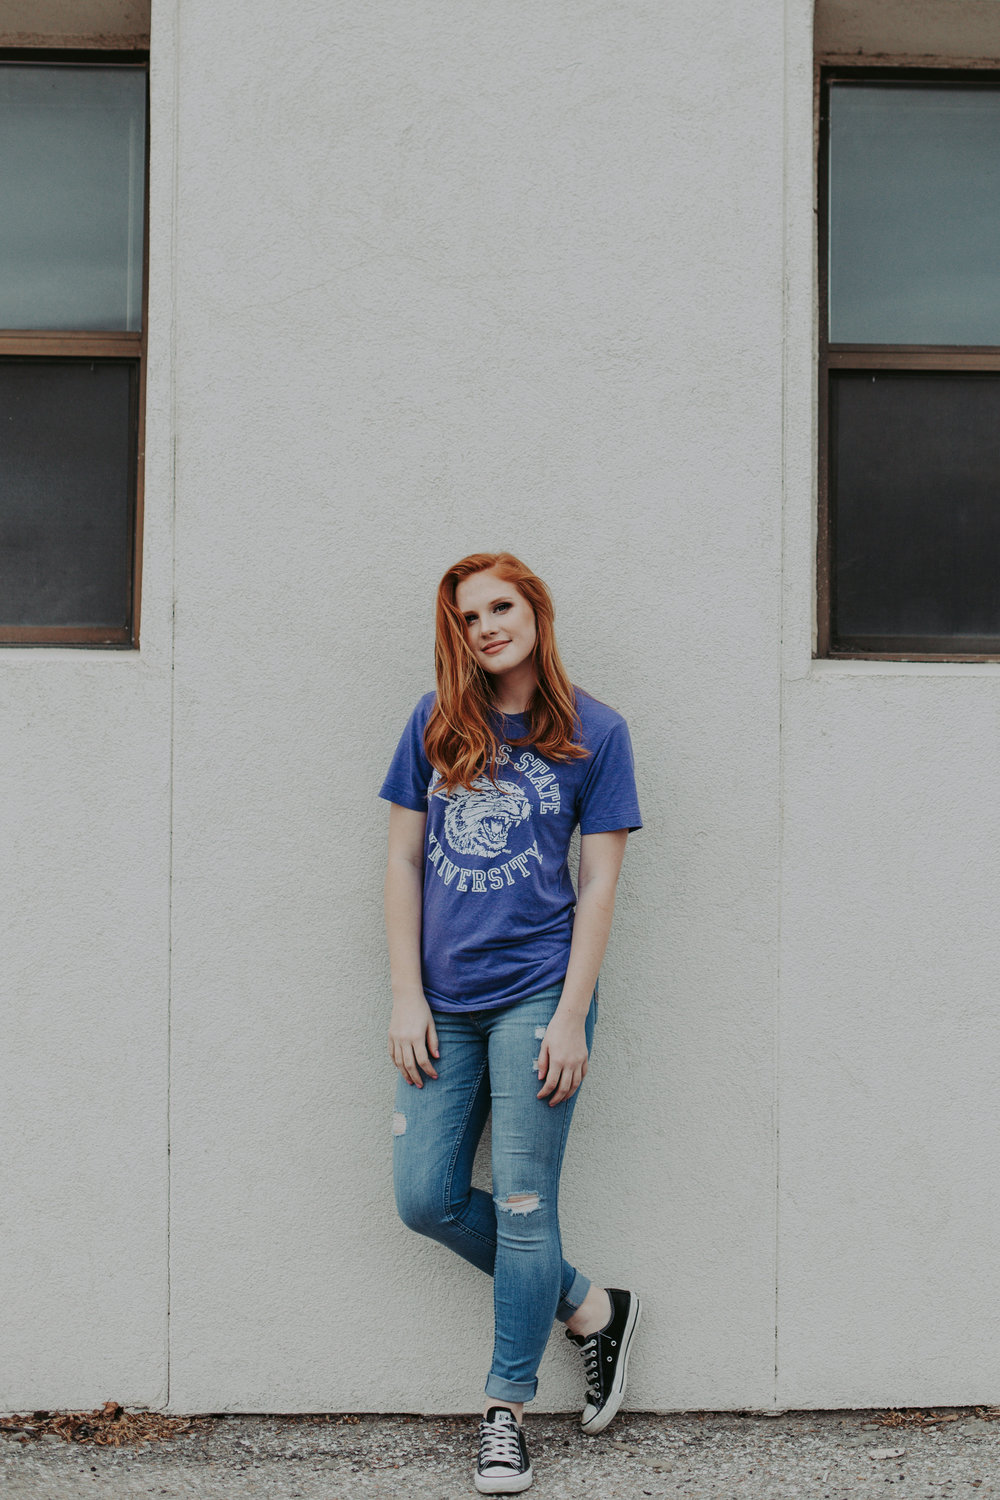 Senior pictures with college t-shirt.